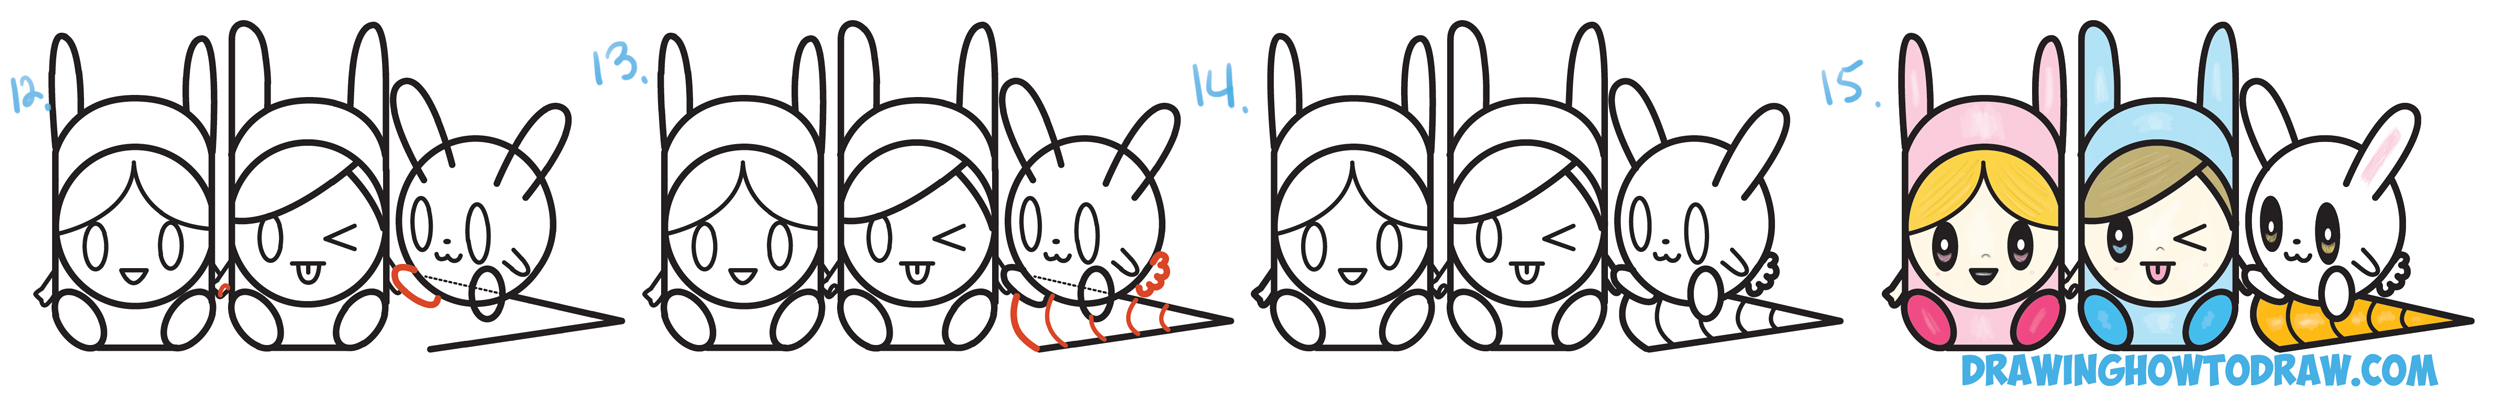 "Learn How to Draw Cute Kawaii / Chibi Characters in Bunny Hats and a Bunny from Letters ""abc"" Simple Step by Step Drawing Tutorial for Children"